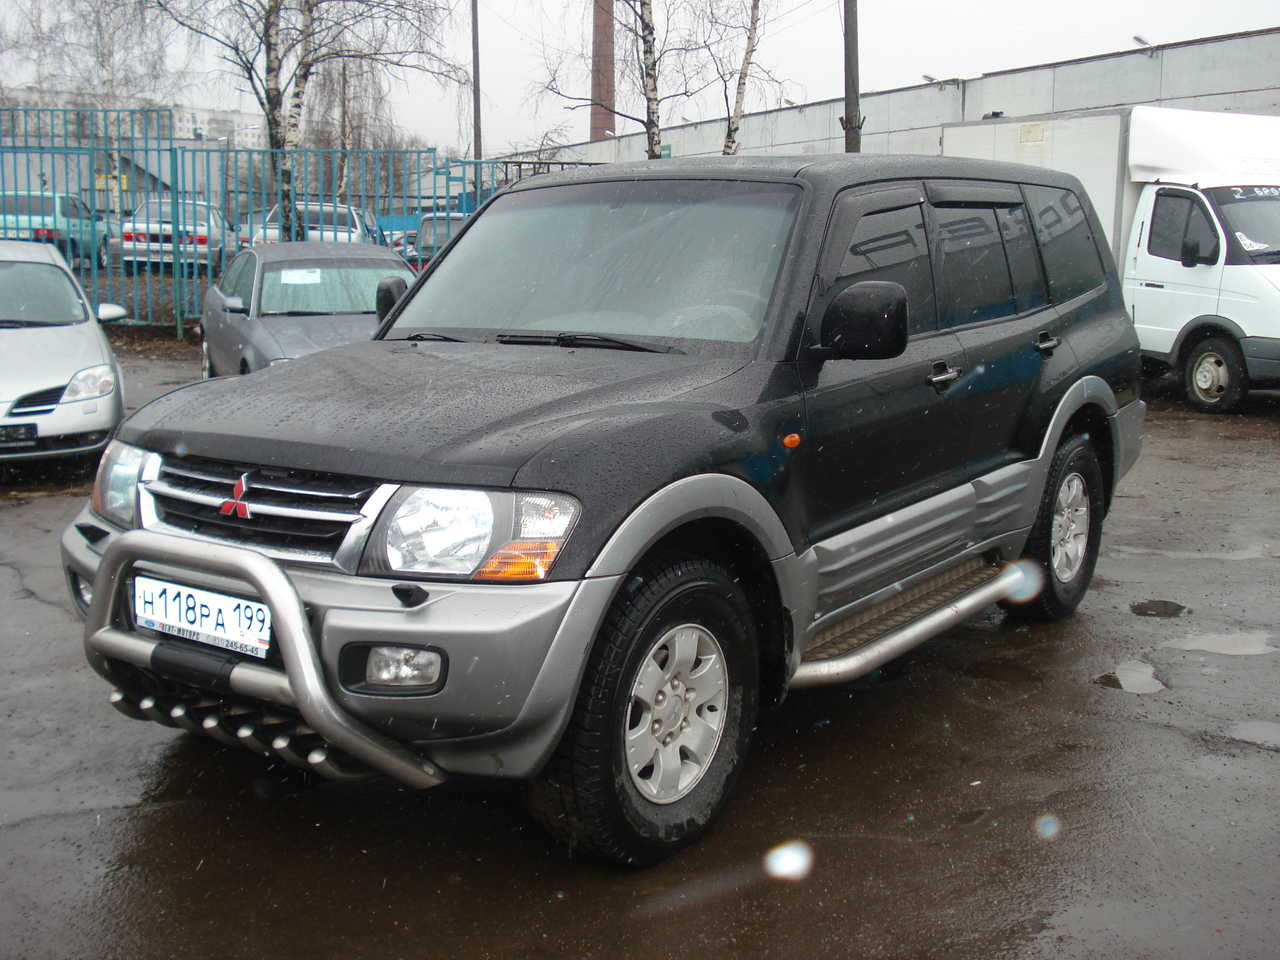 2002 mitsubishi pajero wallpapers, 3.2l., diesel, automatic for sale